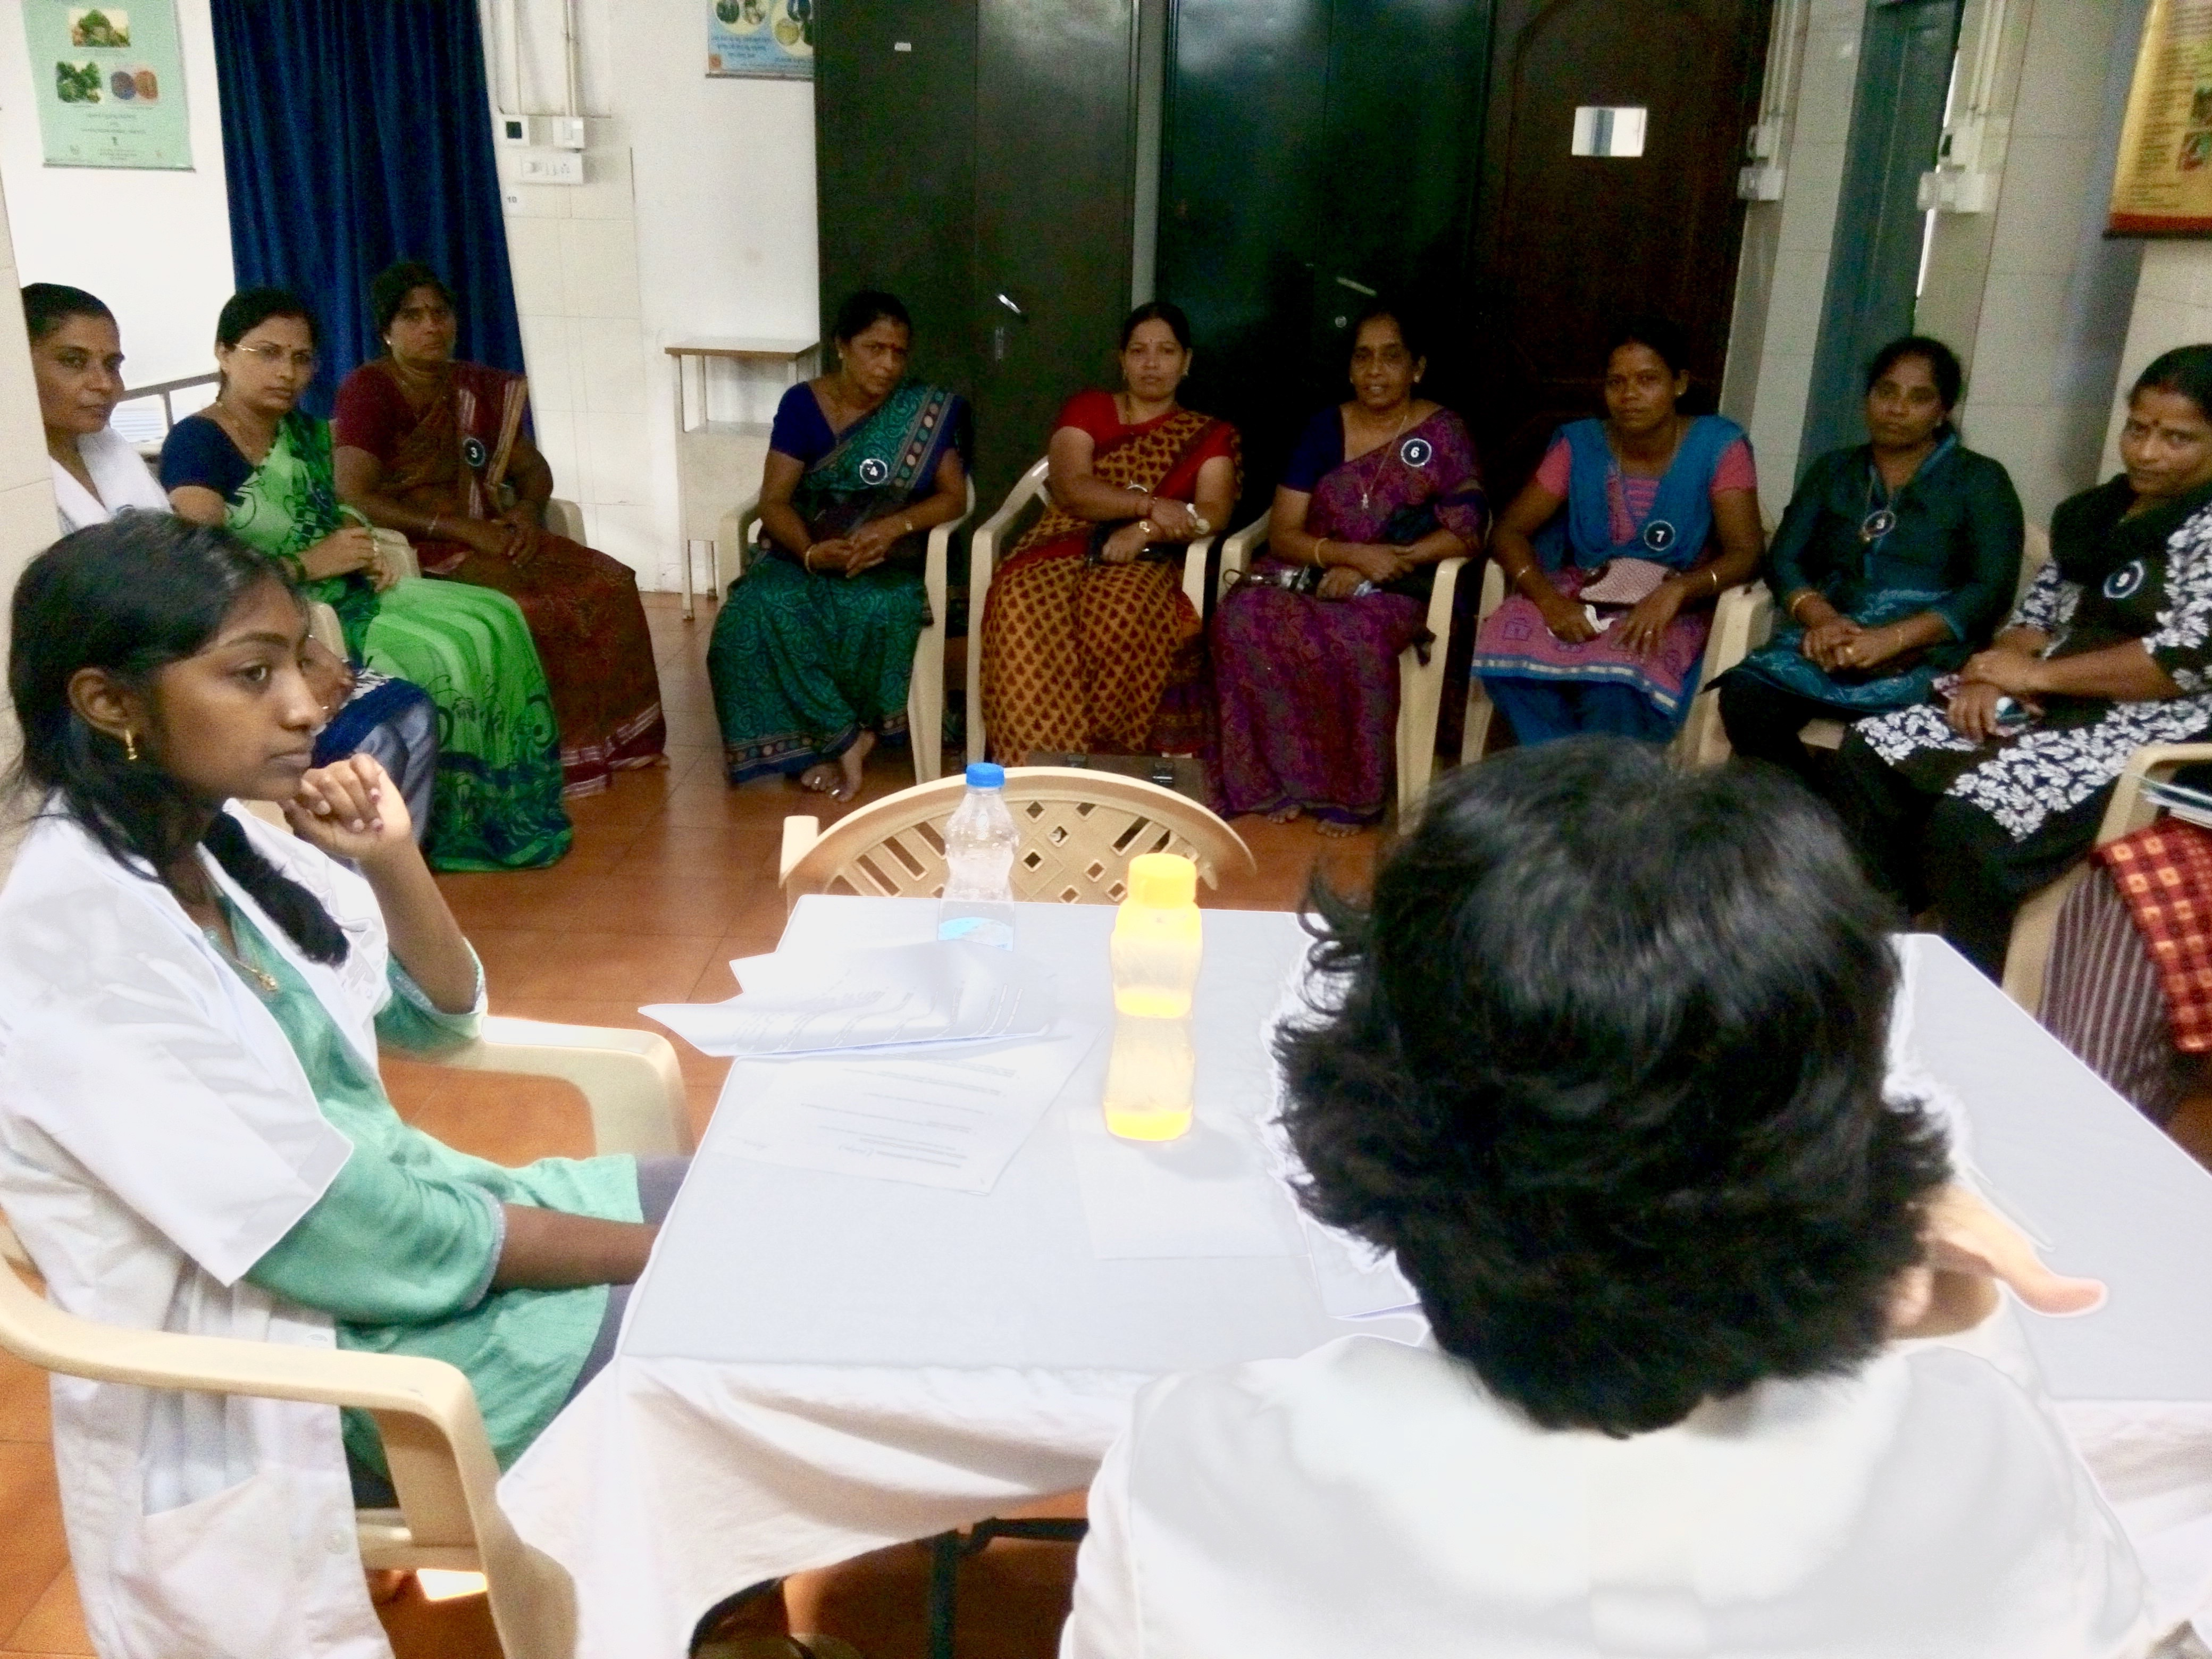 This picture shows a focus group discussion at the Malpe clinic in Manipal, Karnataka, India. Many of the questions posed to the women were designed to elicit their attitudes towards reproductive healthcare and cancer screenings. During this discussion, I learned much about the barriers to healthcare that these women face, from oppressive husbands to unsupportive neighbors to arrogant doctors. Towards the end, the women bombarded us with questions about their reproductive system that they had never received answers to. Here, the women of the group and I, are watching the doctor explain the difference between a urethra and a vagina.